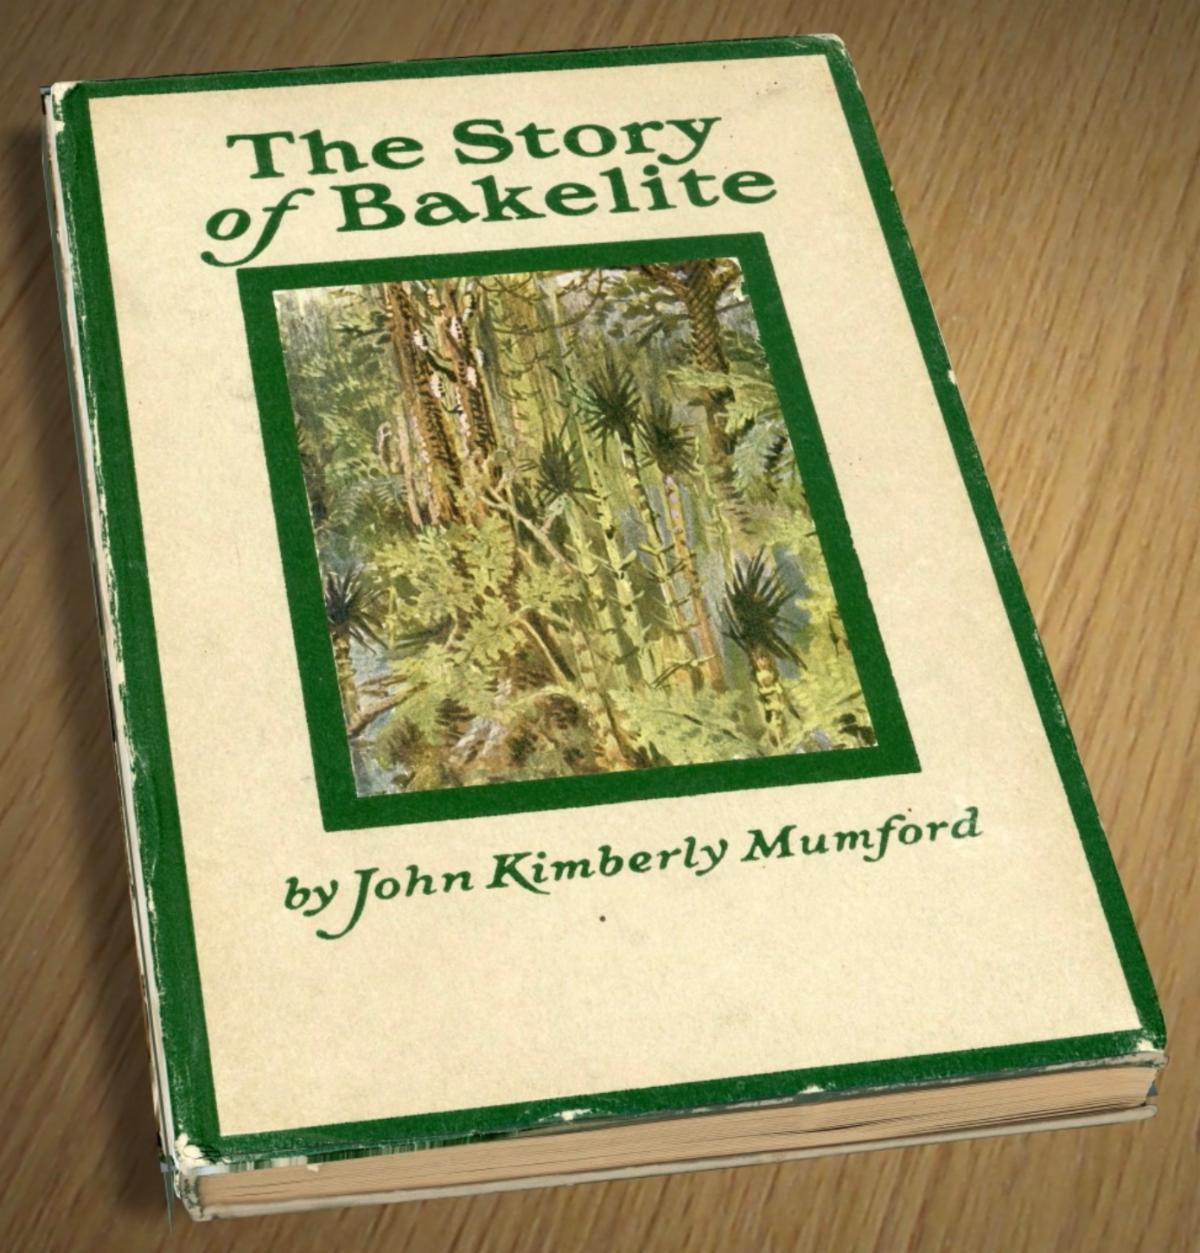 The Story of Bakelite book cover